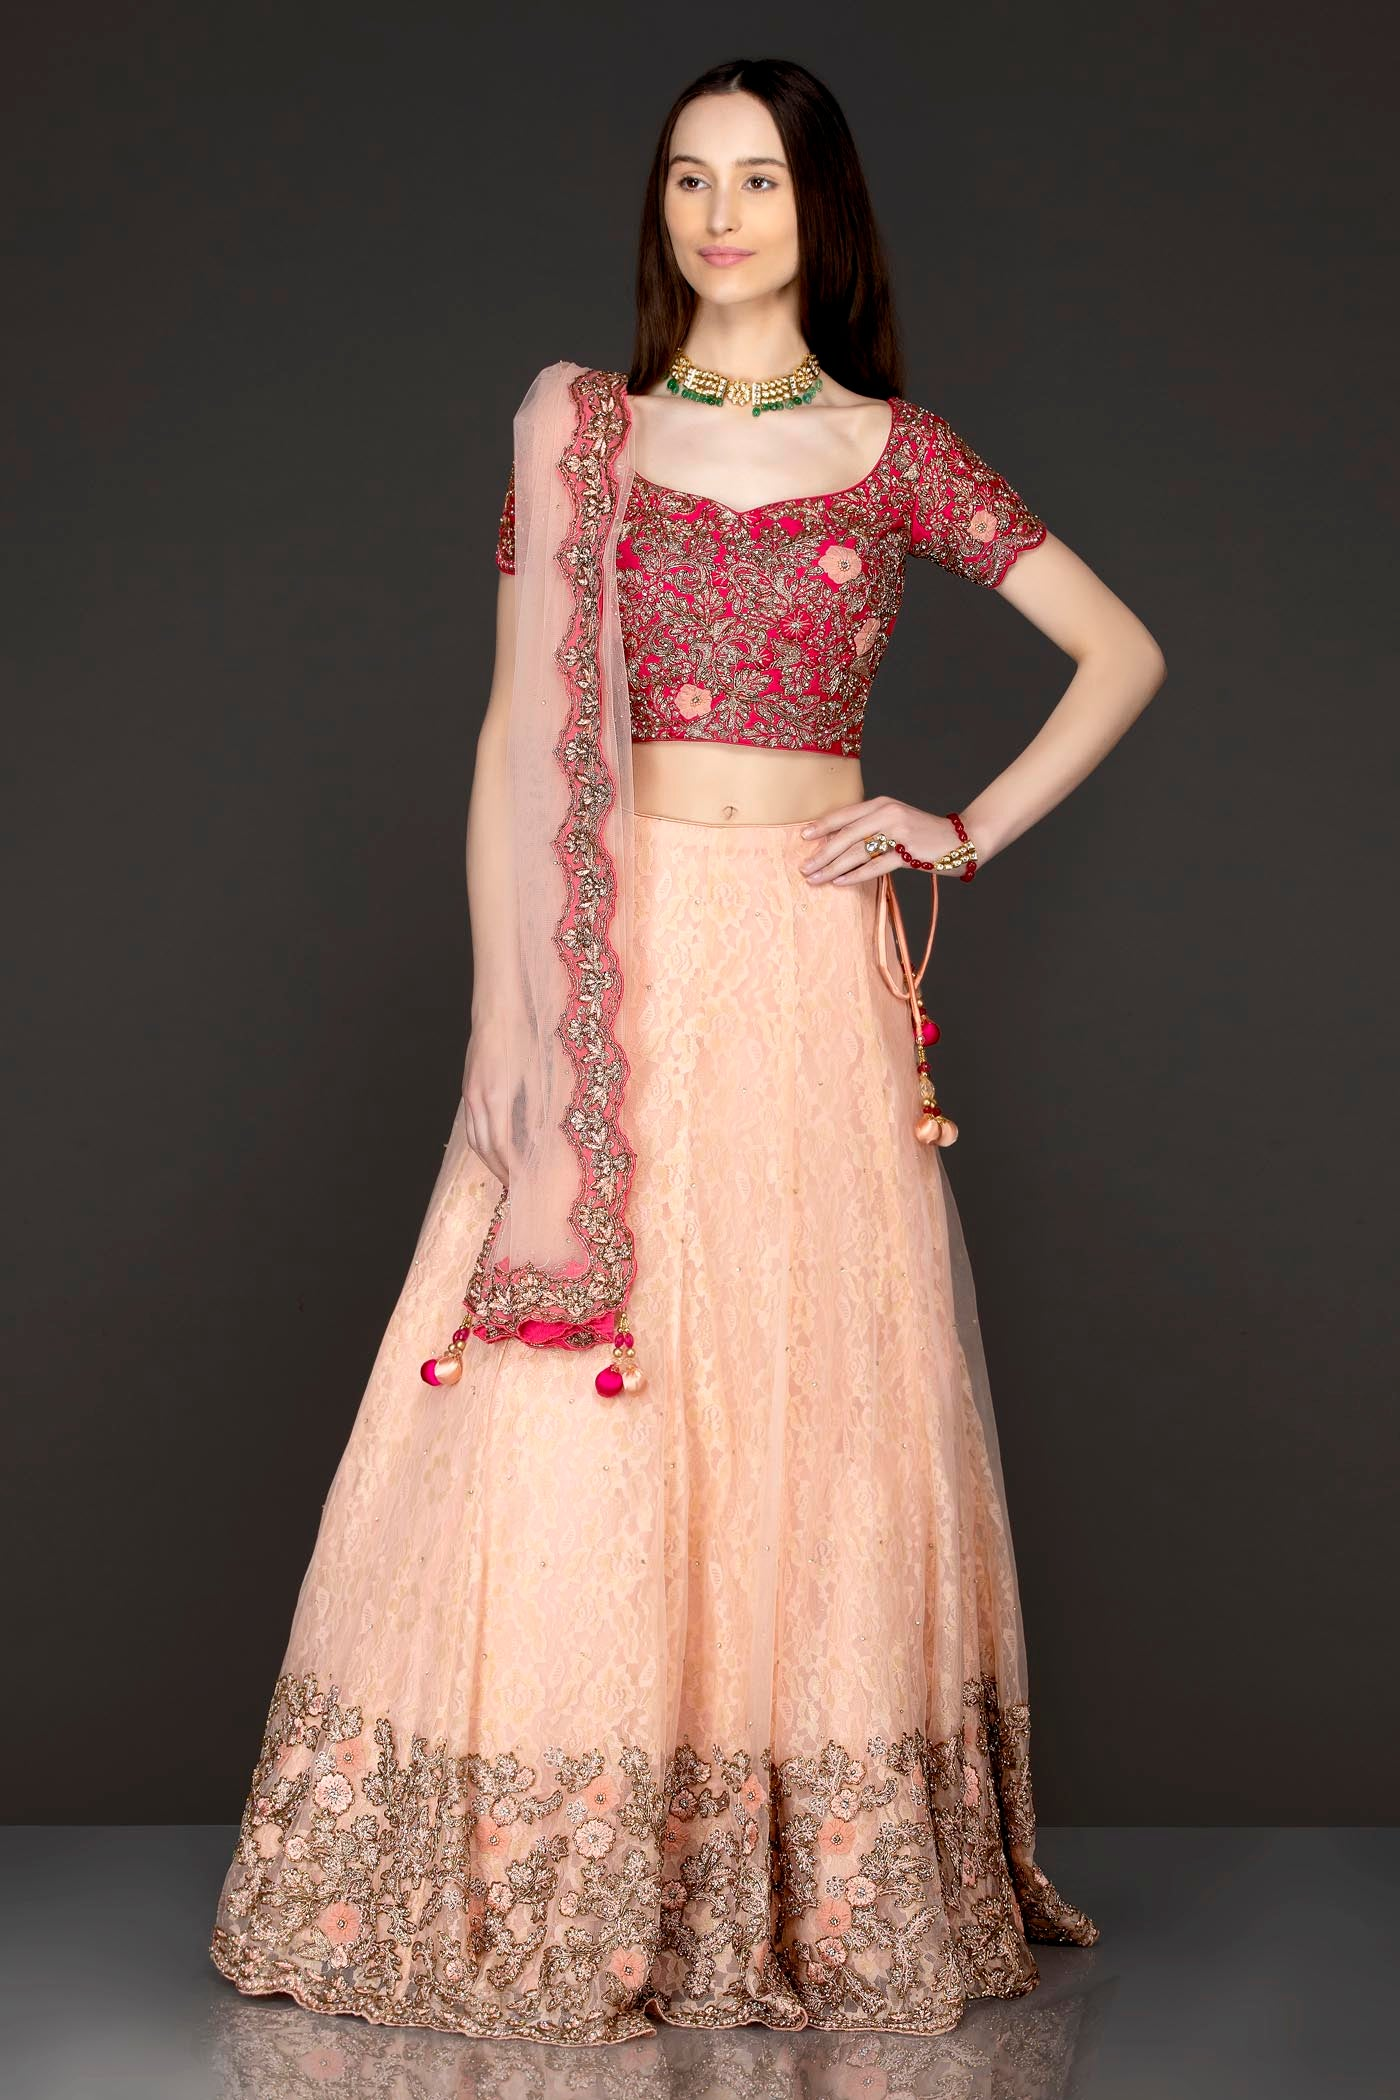 Fuchsia Pink Silk Top And Peach Organza Skirt With Lace Linning With Peach Net Dupatta